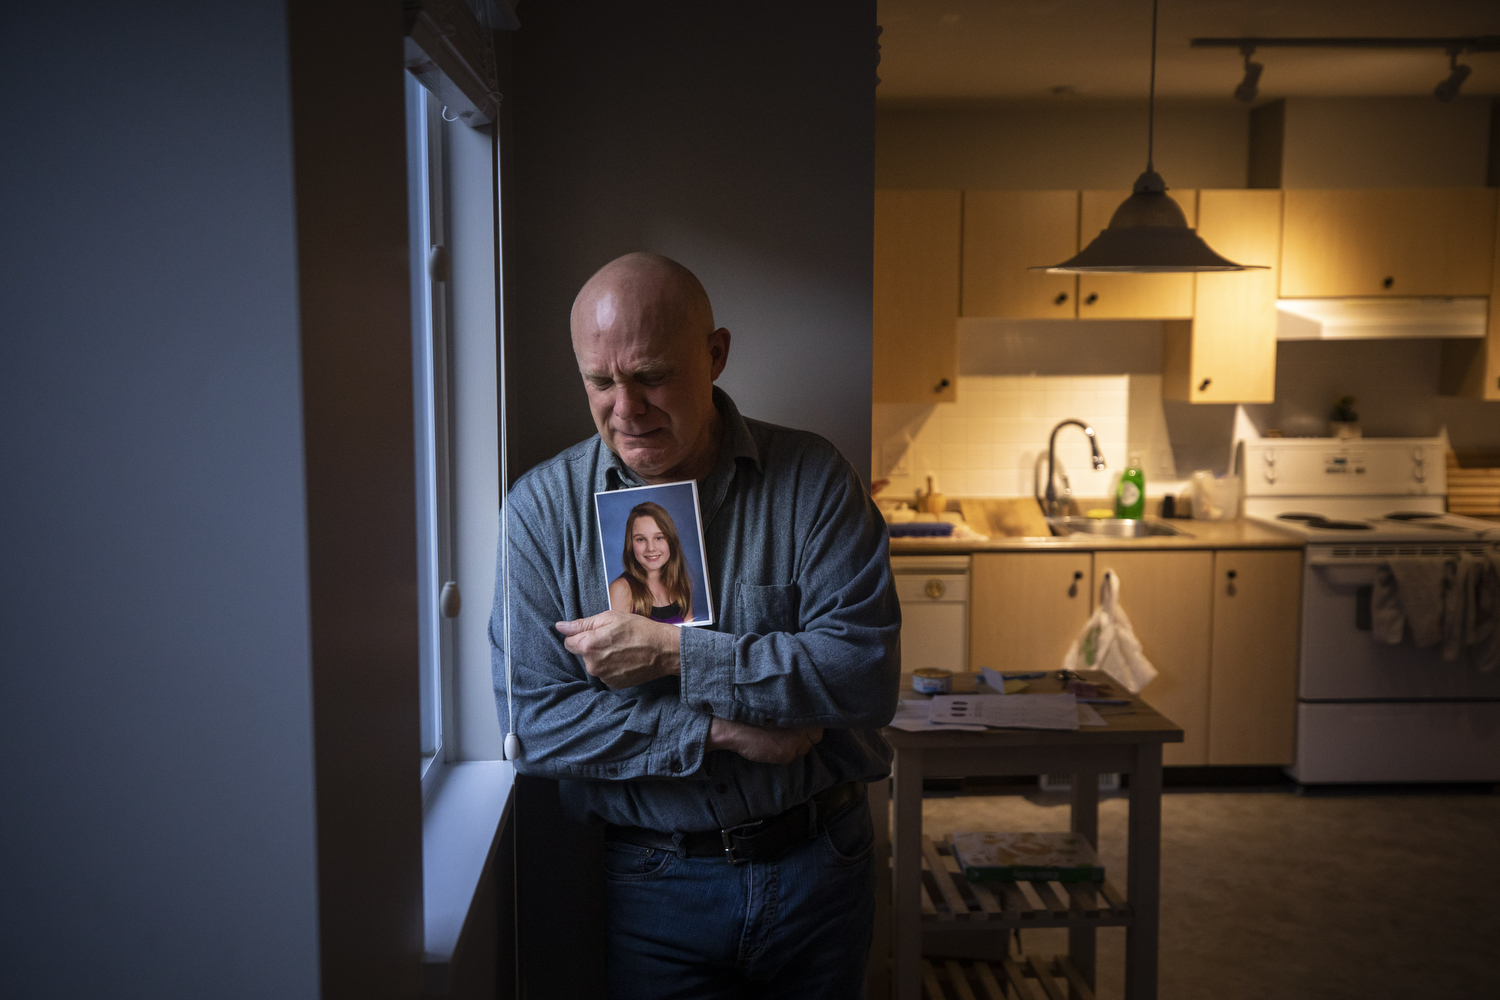 John Butler holds a photo of his daughter Olivia Dalton, who died of a fentanyl overdose in Langley, B.C., on Nov. 3, 2020. (Ben Nelms/CBC Vancouver)